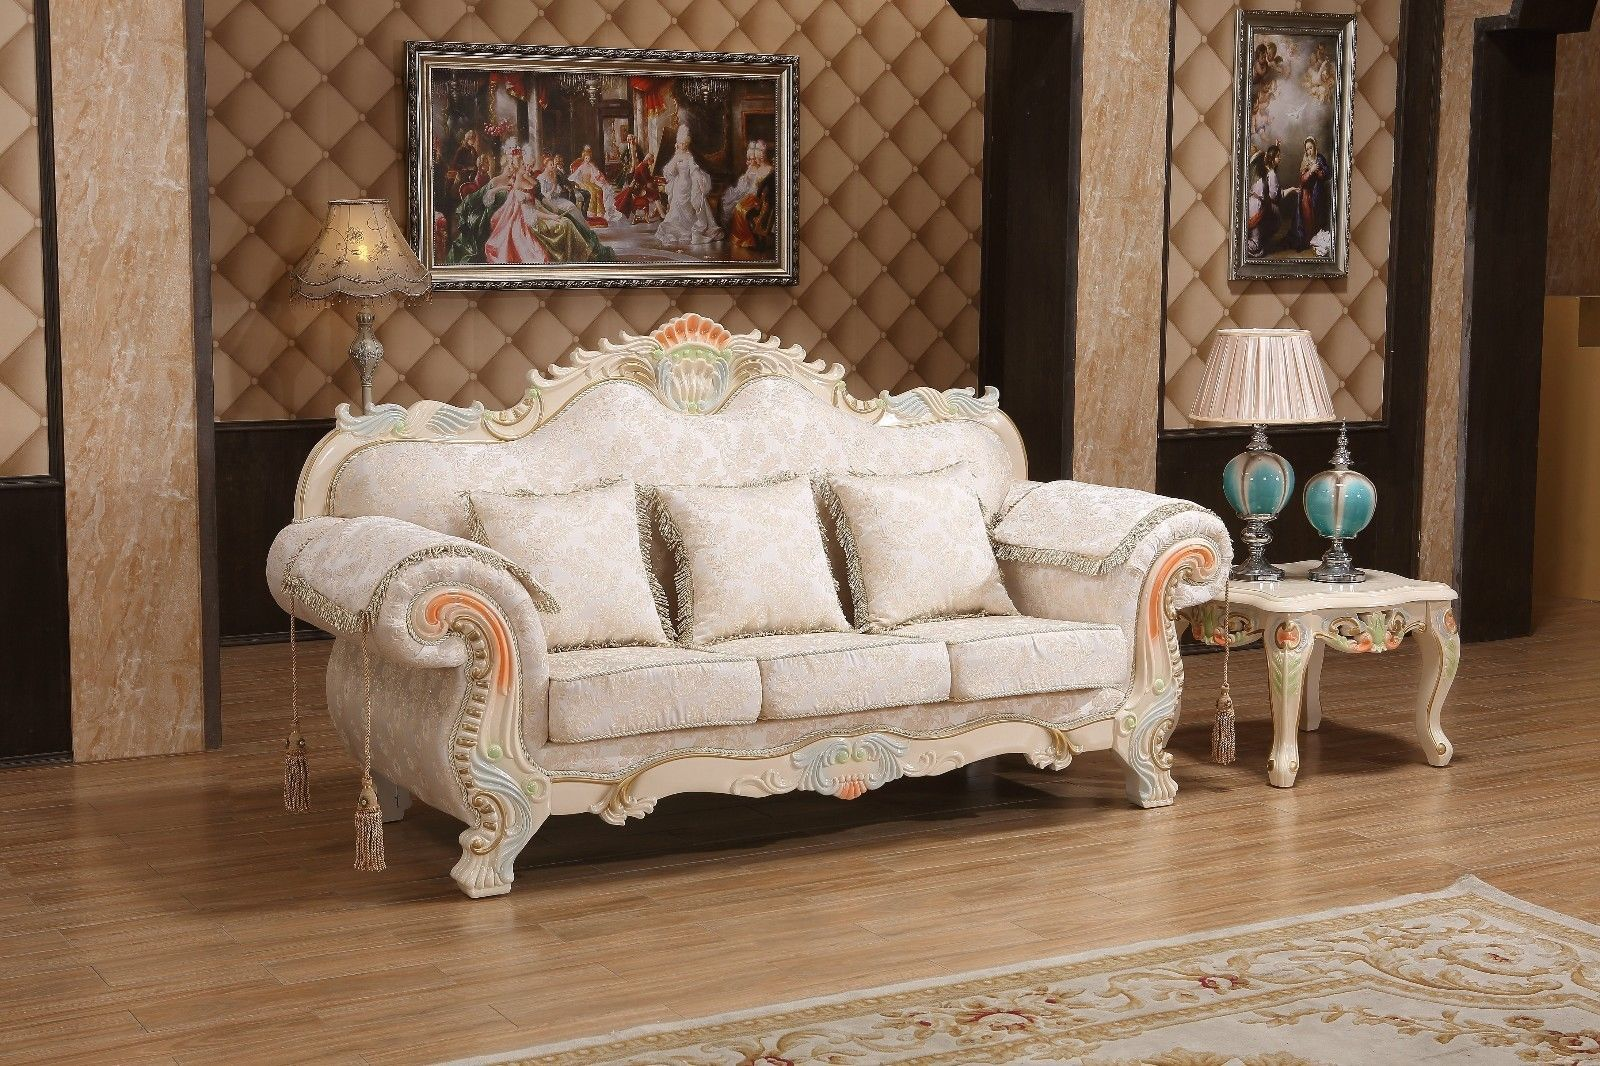 Meridian 657 Living Room Sofa Set 2pc. Pink Fabric Traditional Style